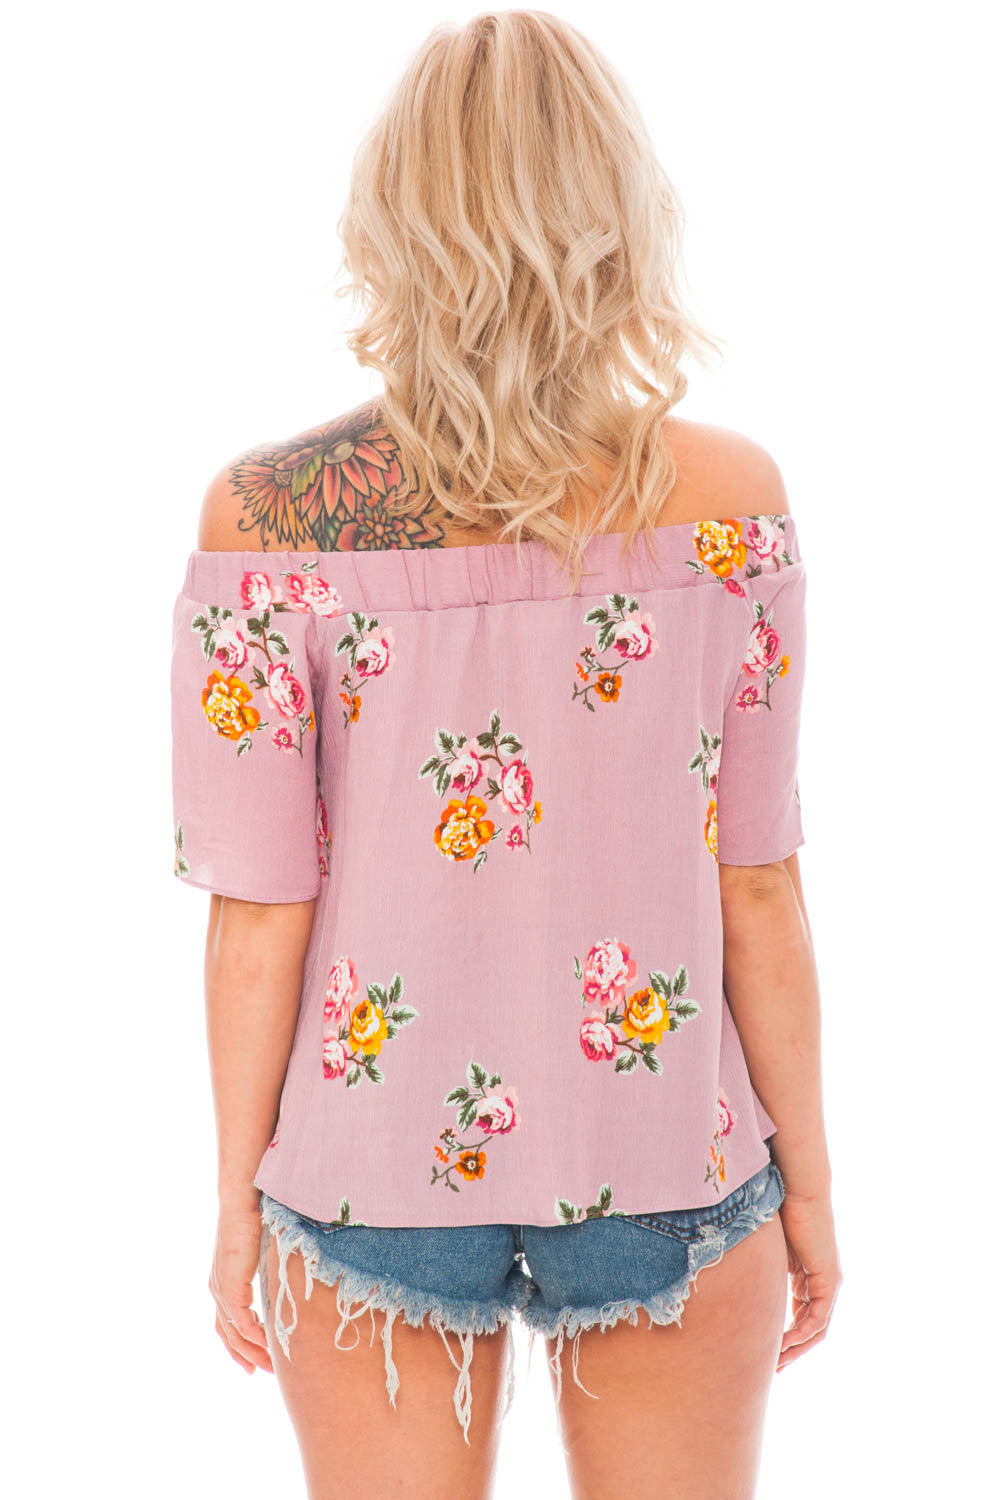 Blouse - Off Shoulder Floral Top by Everly